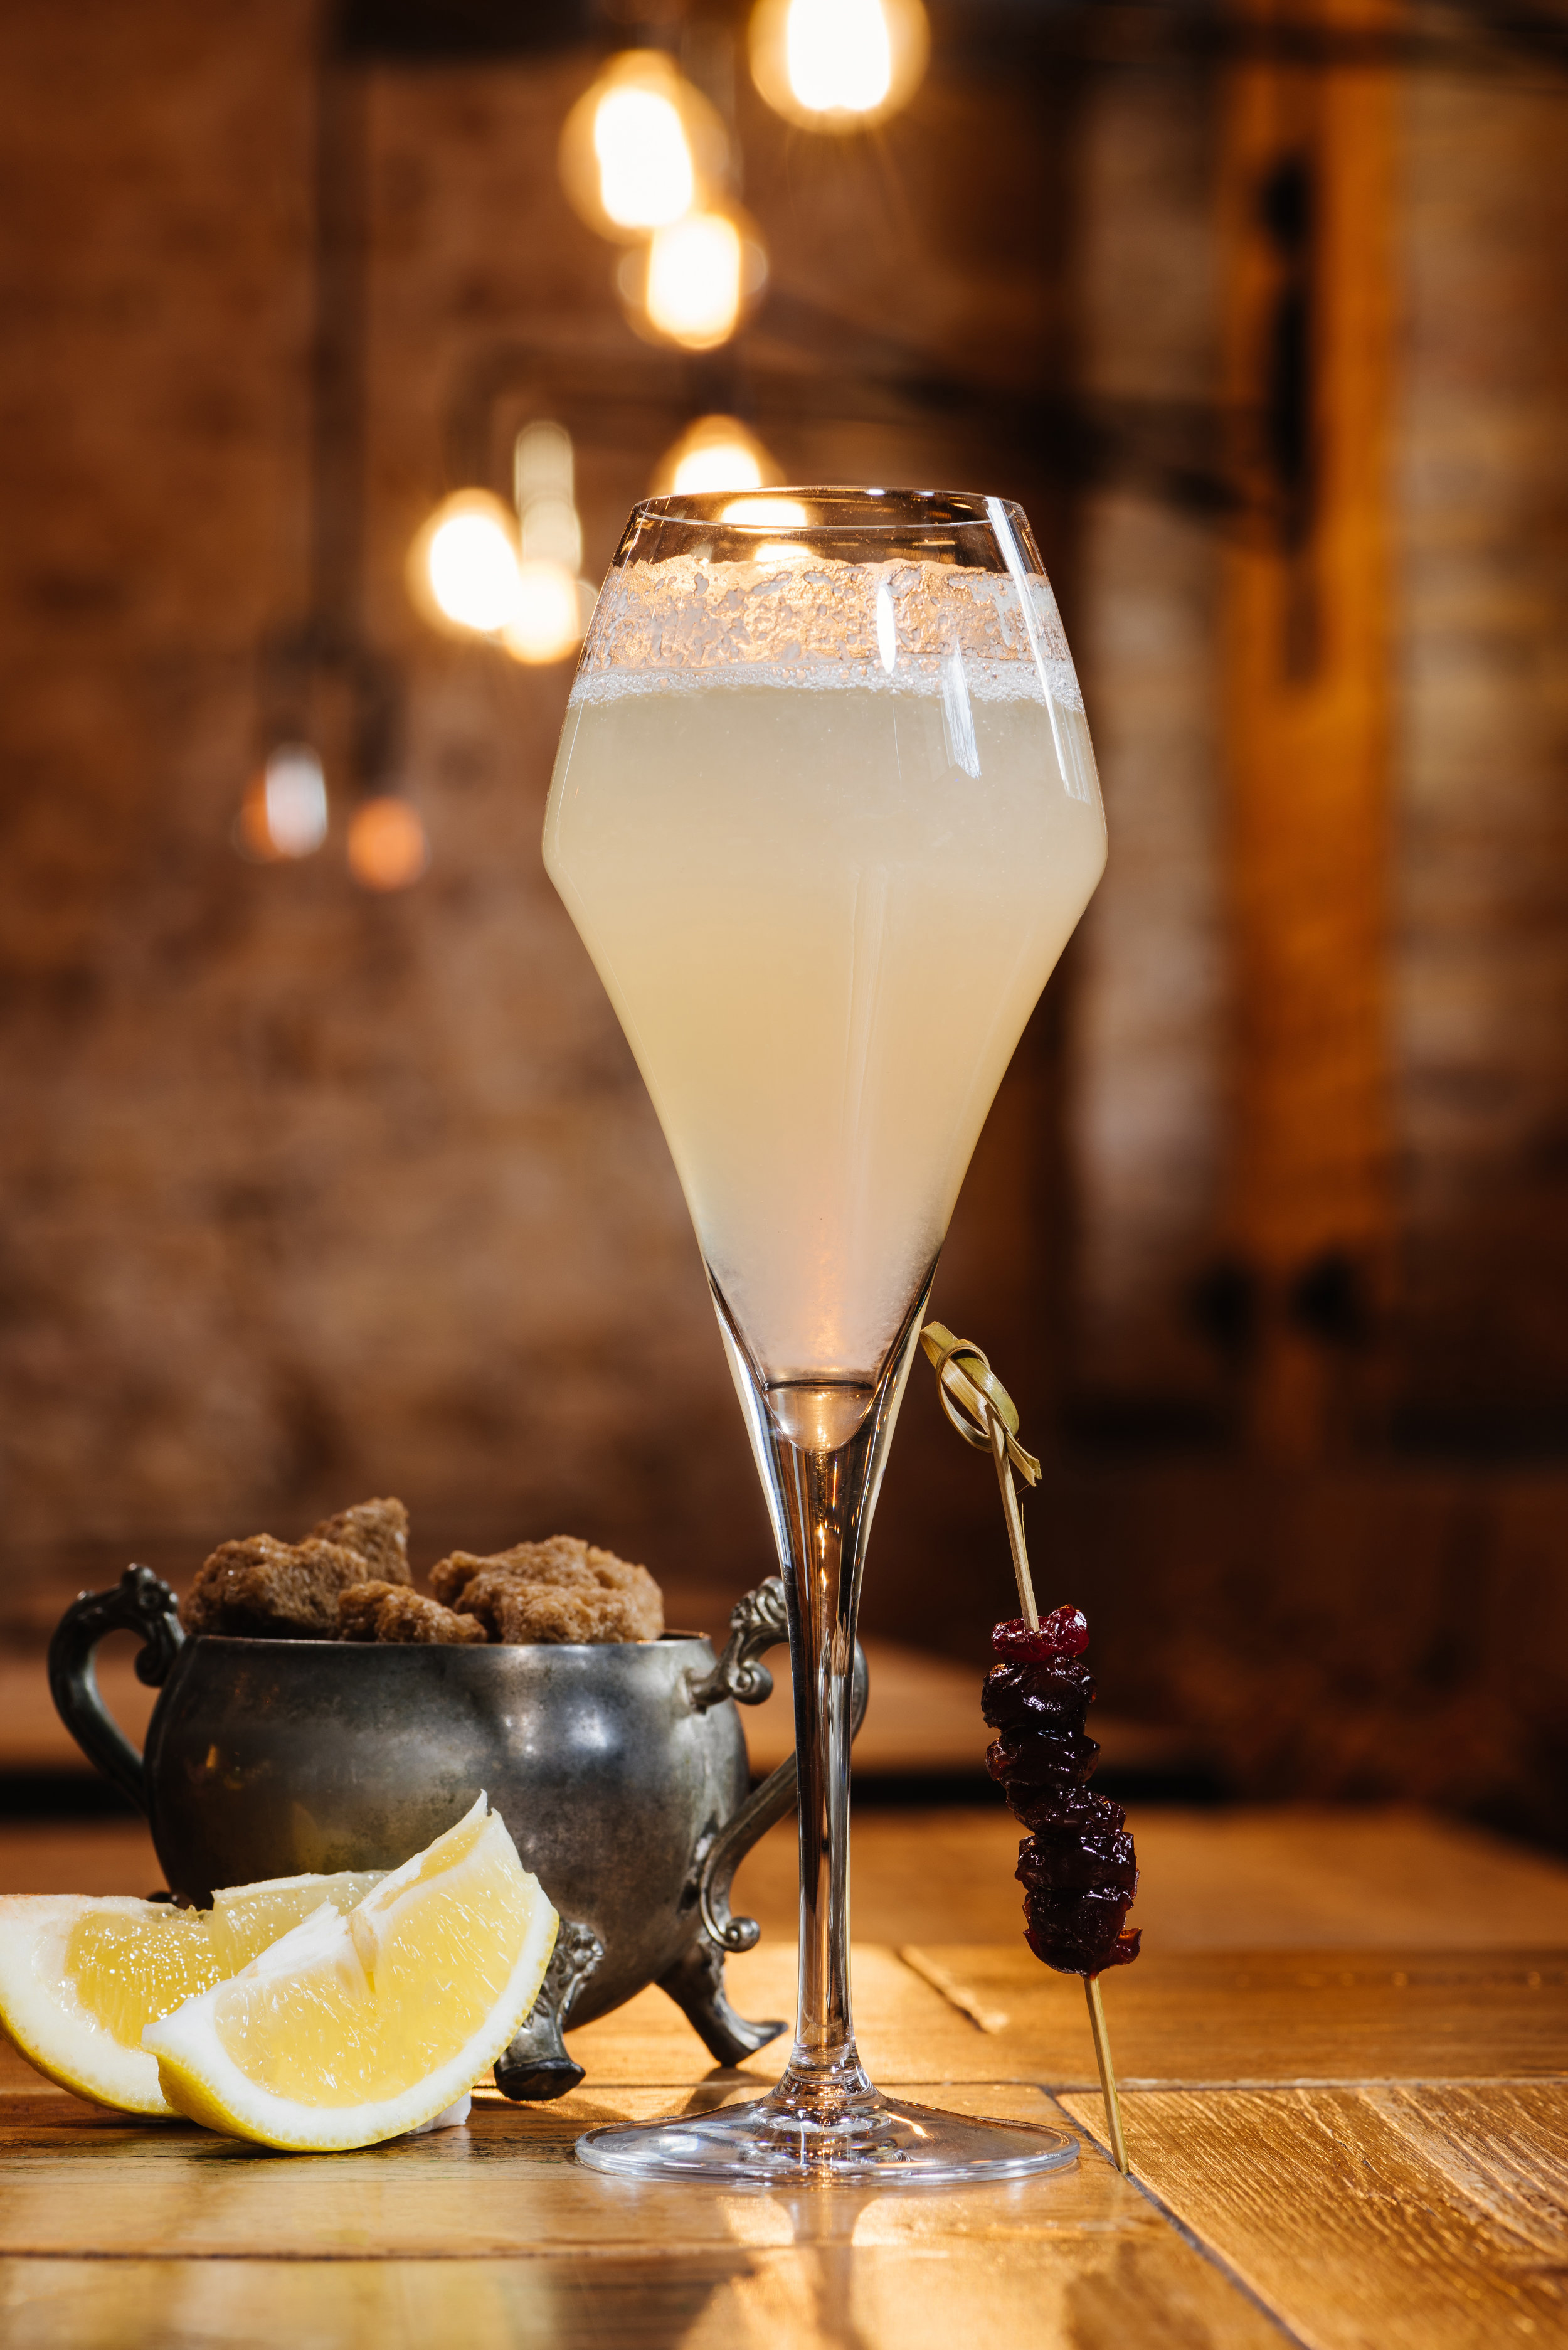 French 75 - 1 oz. dry gin, 1 oz. fresh lemon, 1/2 oz. 2:1 simple syrup (two parts sugar, one part boiling water) and   2 oz. cava.